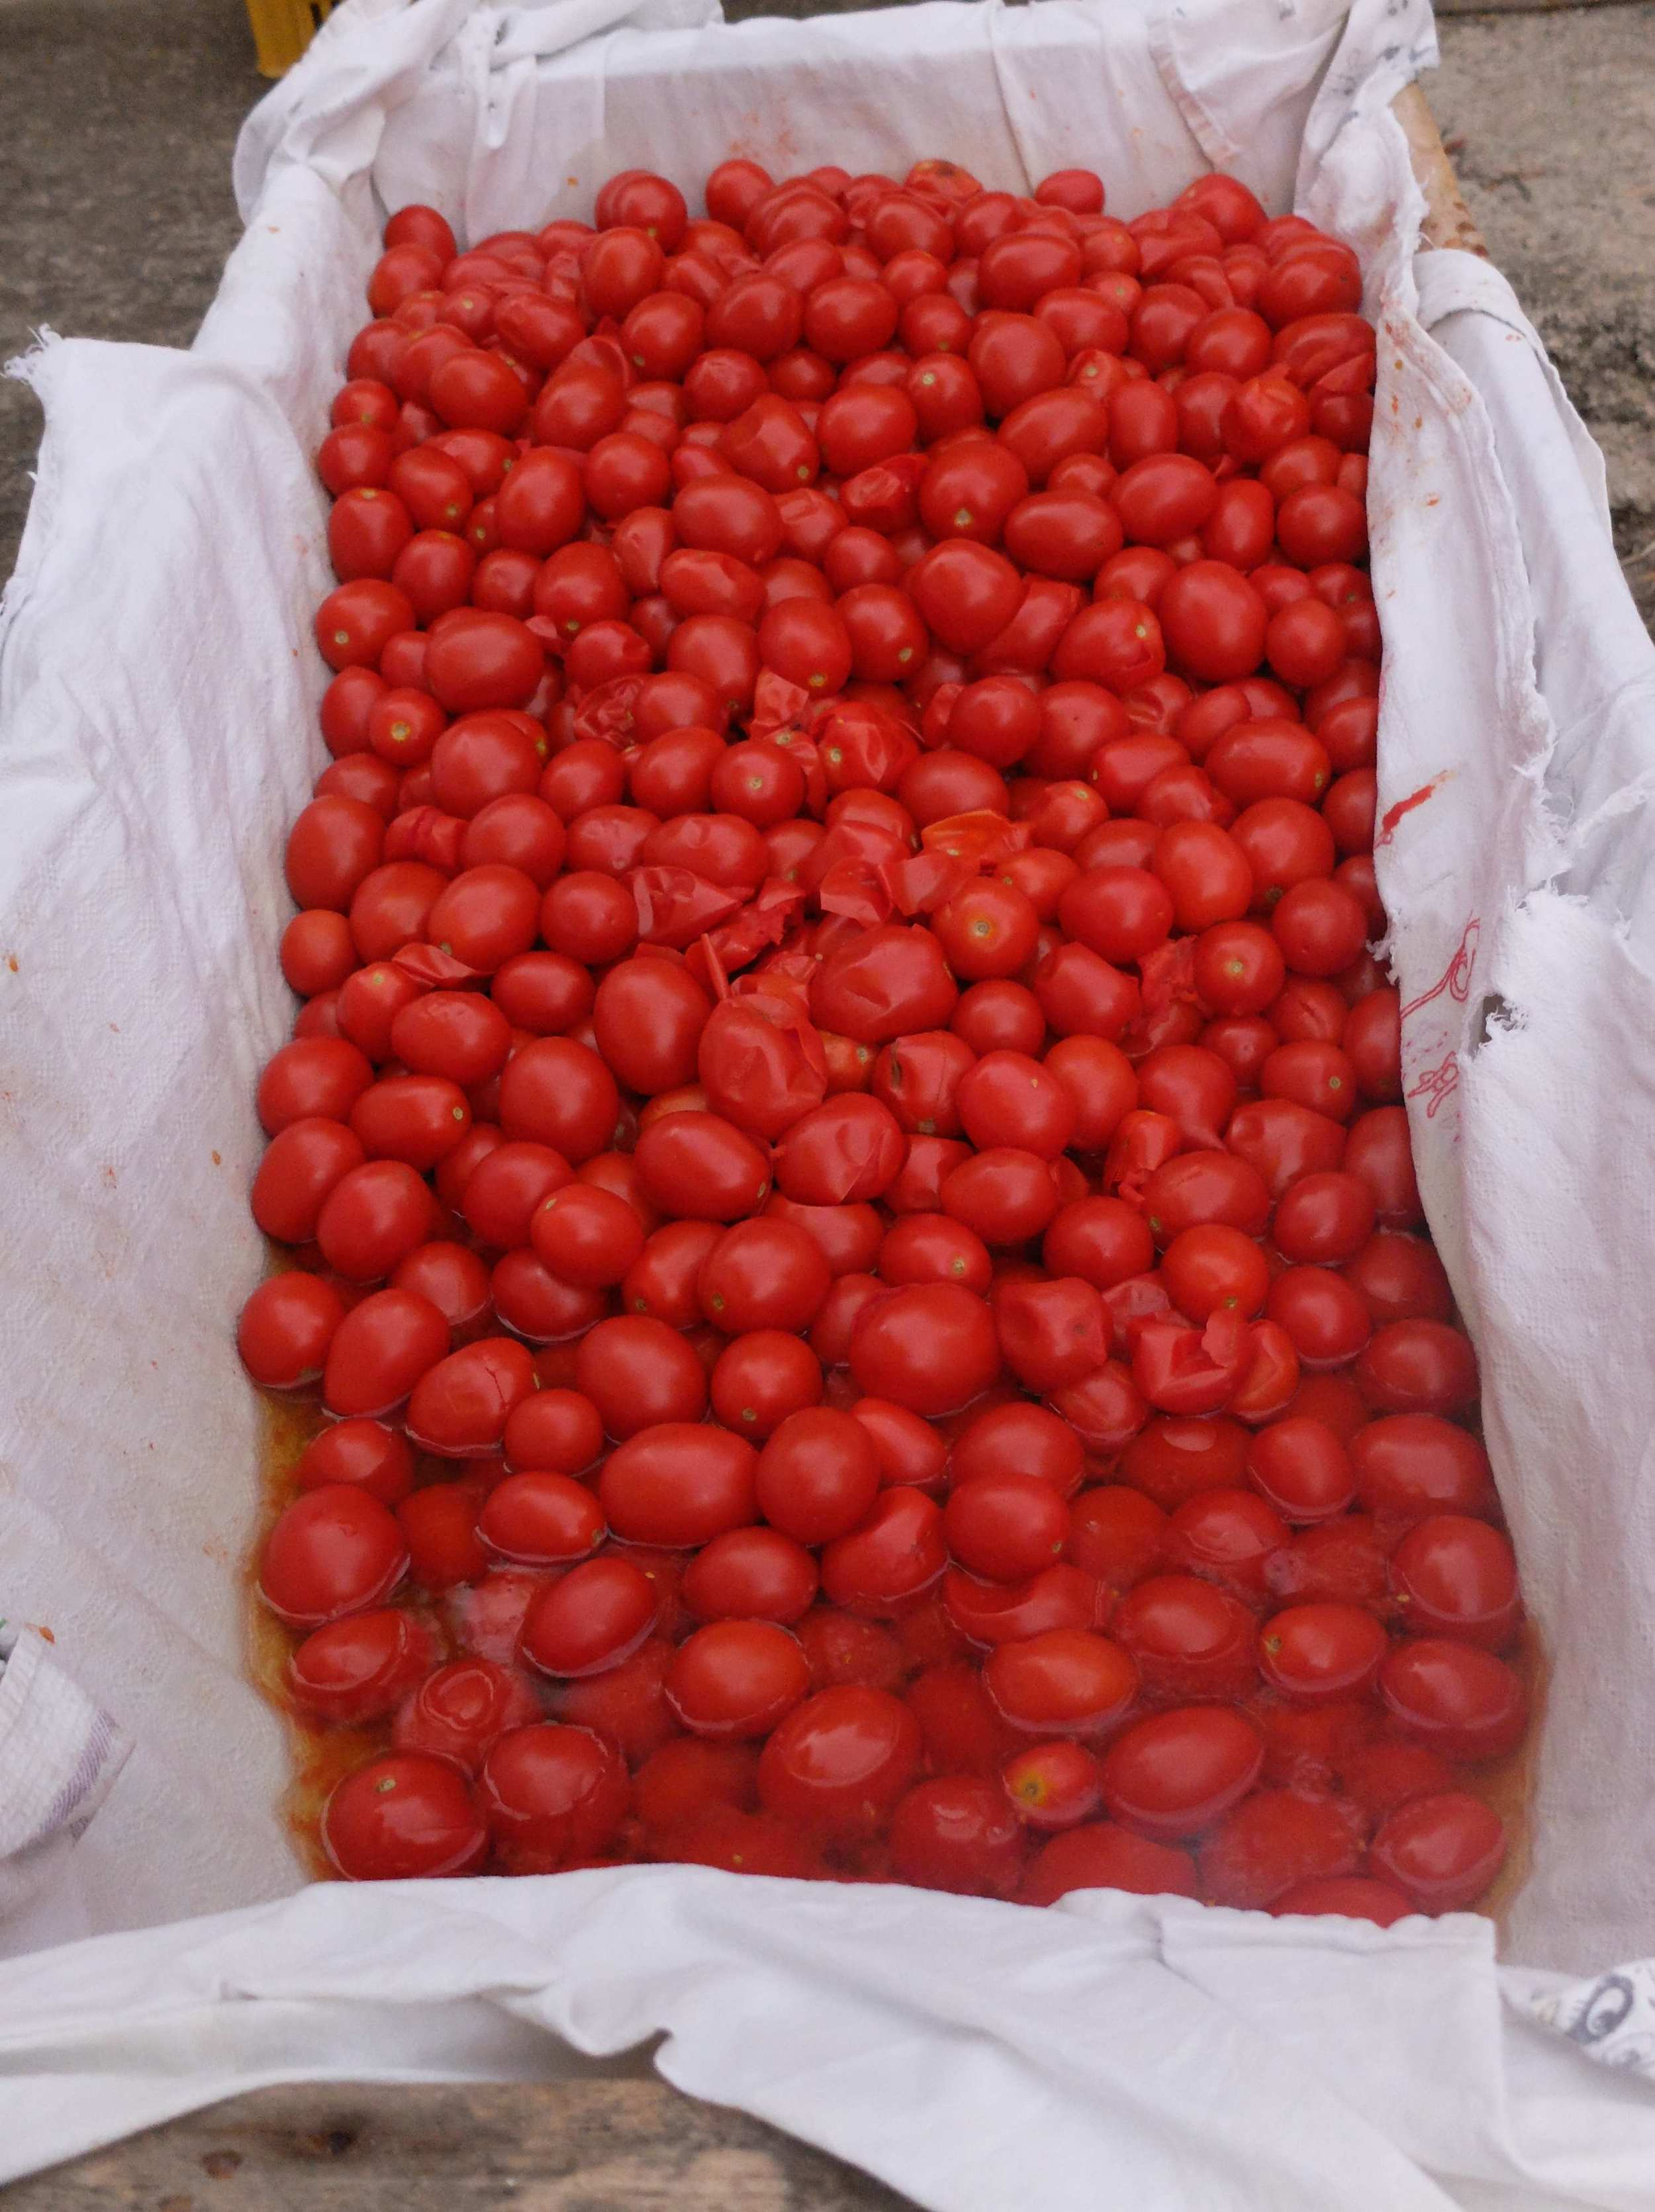 Boiled tomatoes resting in muslin